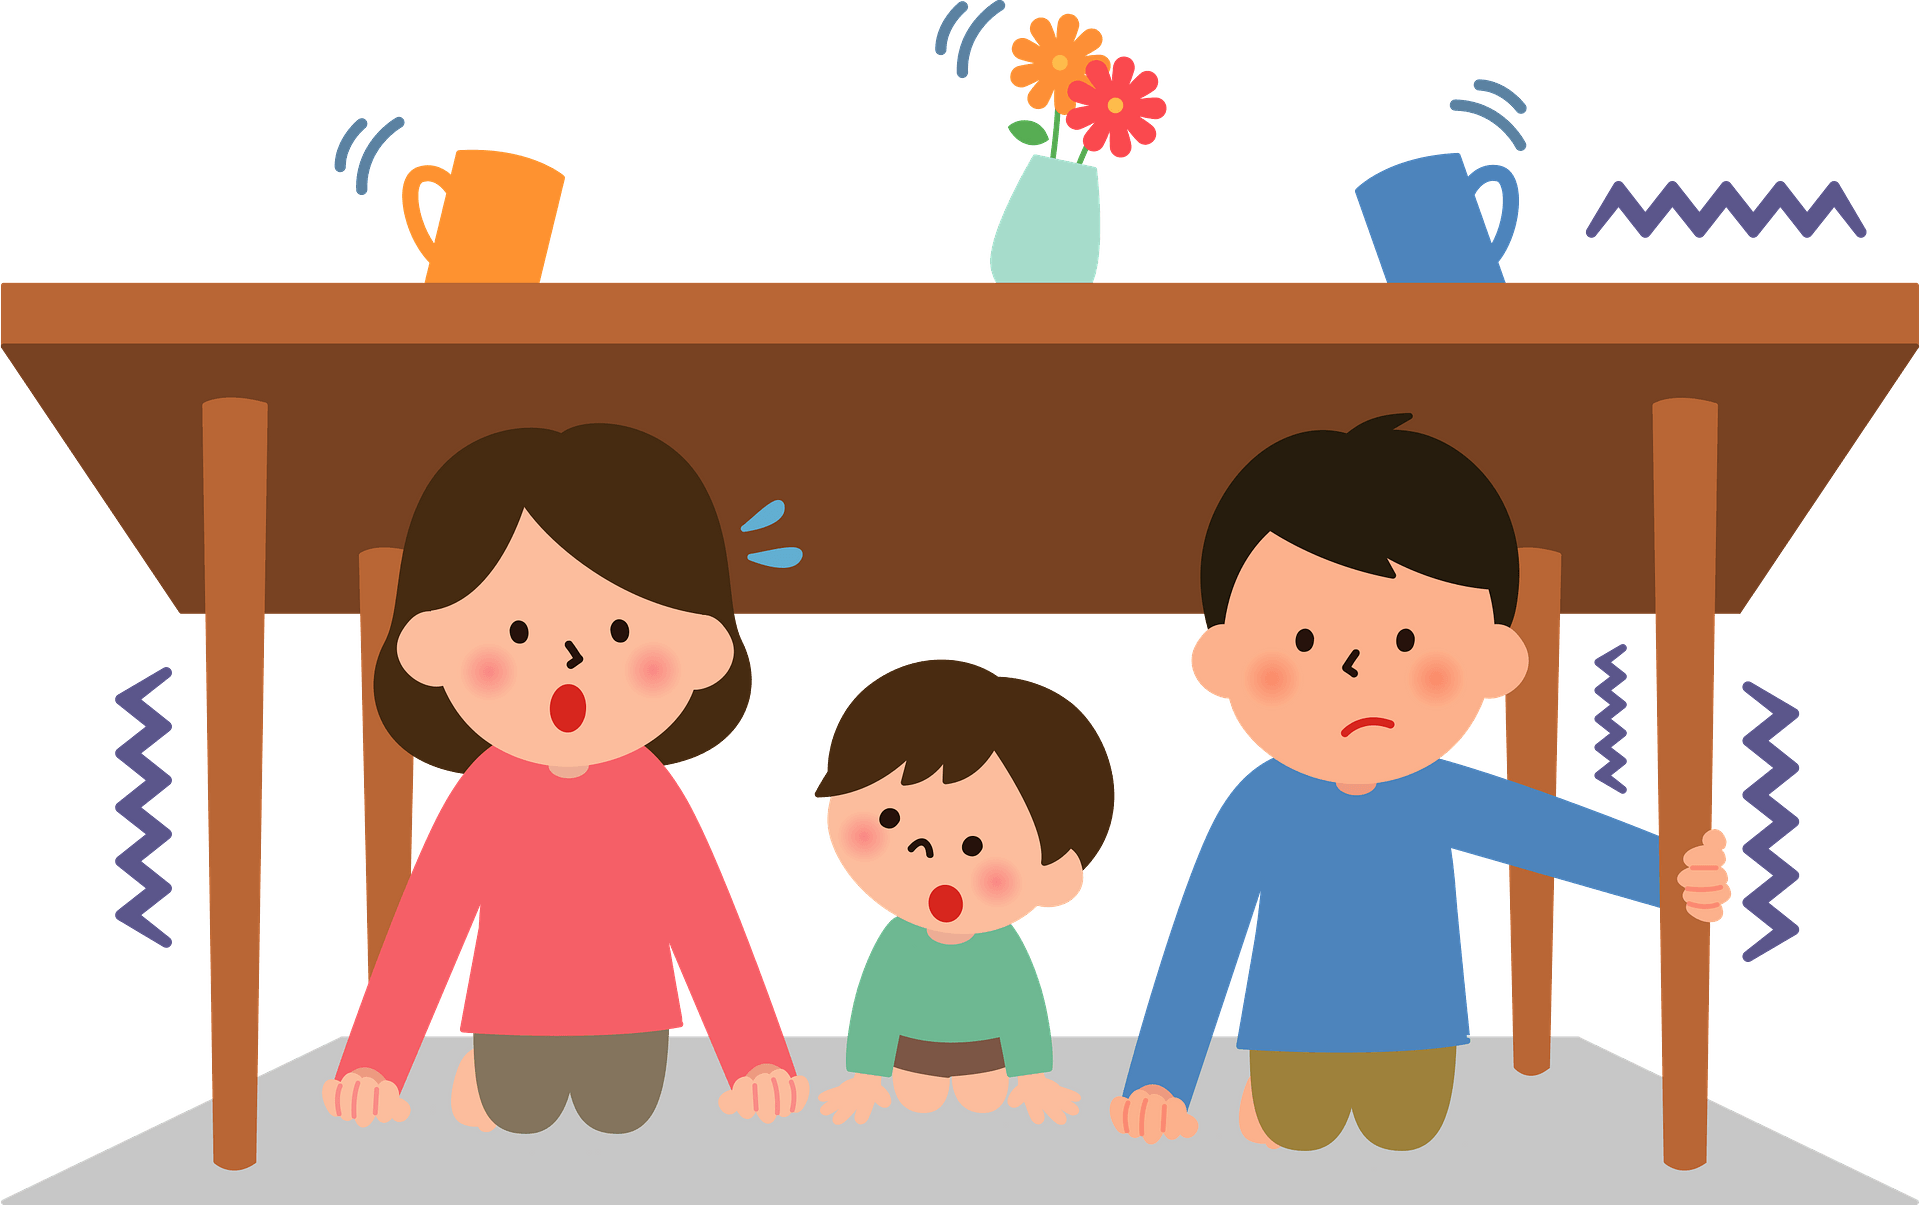 Family Is Seeking Protection From An Earthquake Clipart Free Download Transparent Png Creazilla